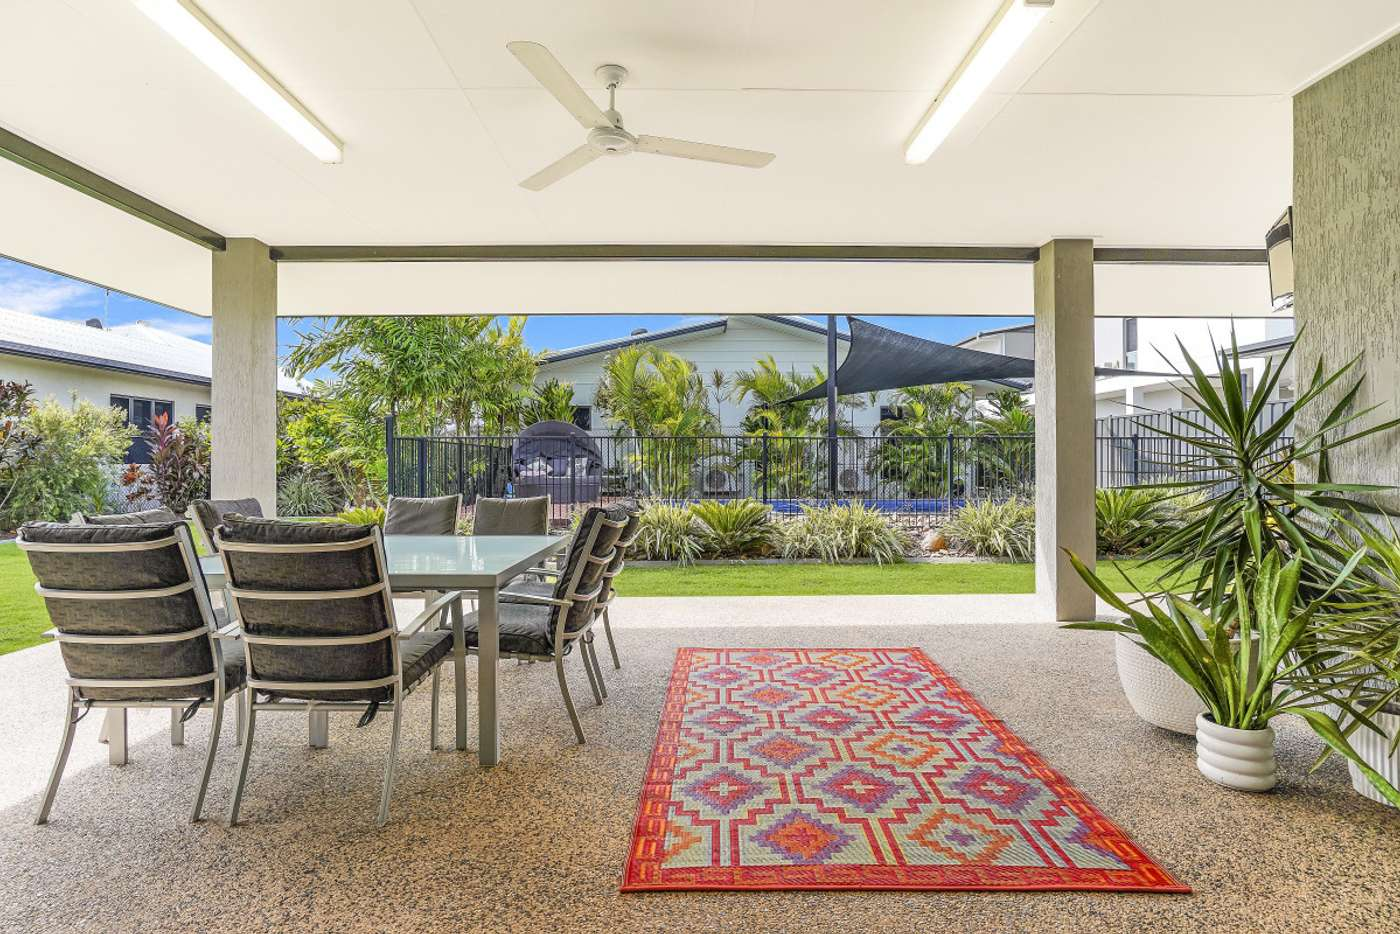 Fifth view of Homely house listing, 15 Donovan Street, Muirhead NT 810